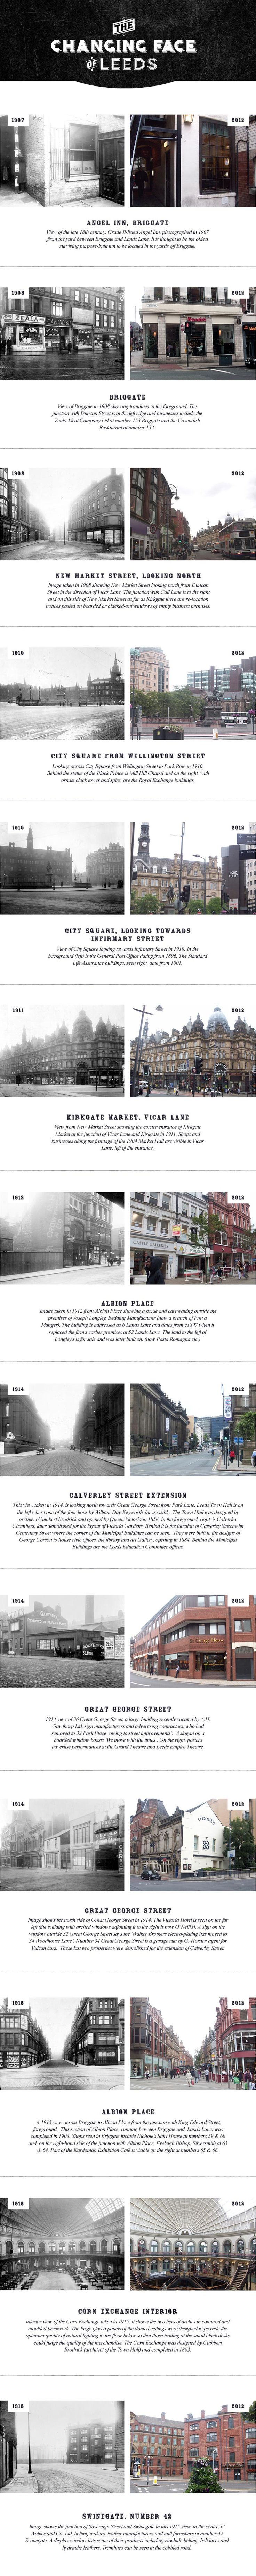 The changing face of Leeds (100+ Years)